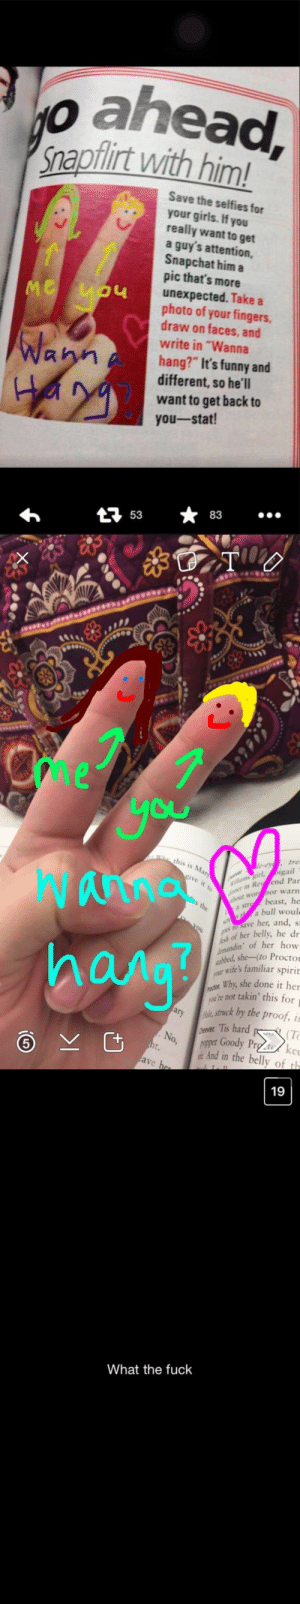 """Fend: o ahead  napflirt with him!  Save the selfies for  your girls. If you  really want to get  a guy's attention,  Snapchat him a  pic that's more  unexpected. Take a  photo of your fingers,  draw on faces, and  write in """"Wanna  hang?"""" It's funny and  different, so he'll  want to get back to  you-stat!  LI  Wa  At 5383   me  Cu  th  , tre  igail  in Rey fend Par  ut worhor warn  Wanna  hana  ms girl,  It  beast, he  a bull woul  a s  save her, and, s  h of her belly, he dr  ndin of her how  she-(to Proctor  ur wife's familiar spirit  Why, she done it her  arykstruck by the proof, is  No, pet Goody Prg to/ ke  ou're not takin' this for  : Tis hard K.  (T  And in the belly of th   19  What the fuck"""